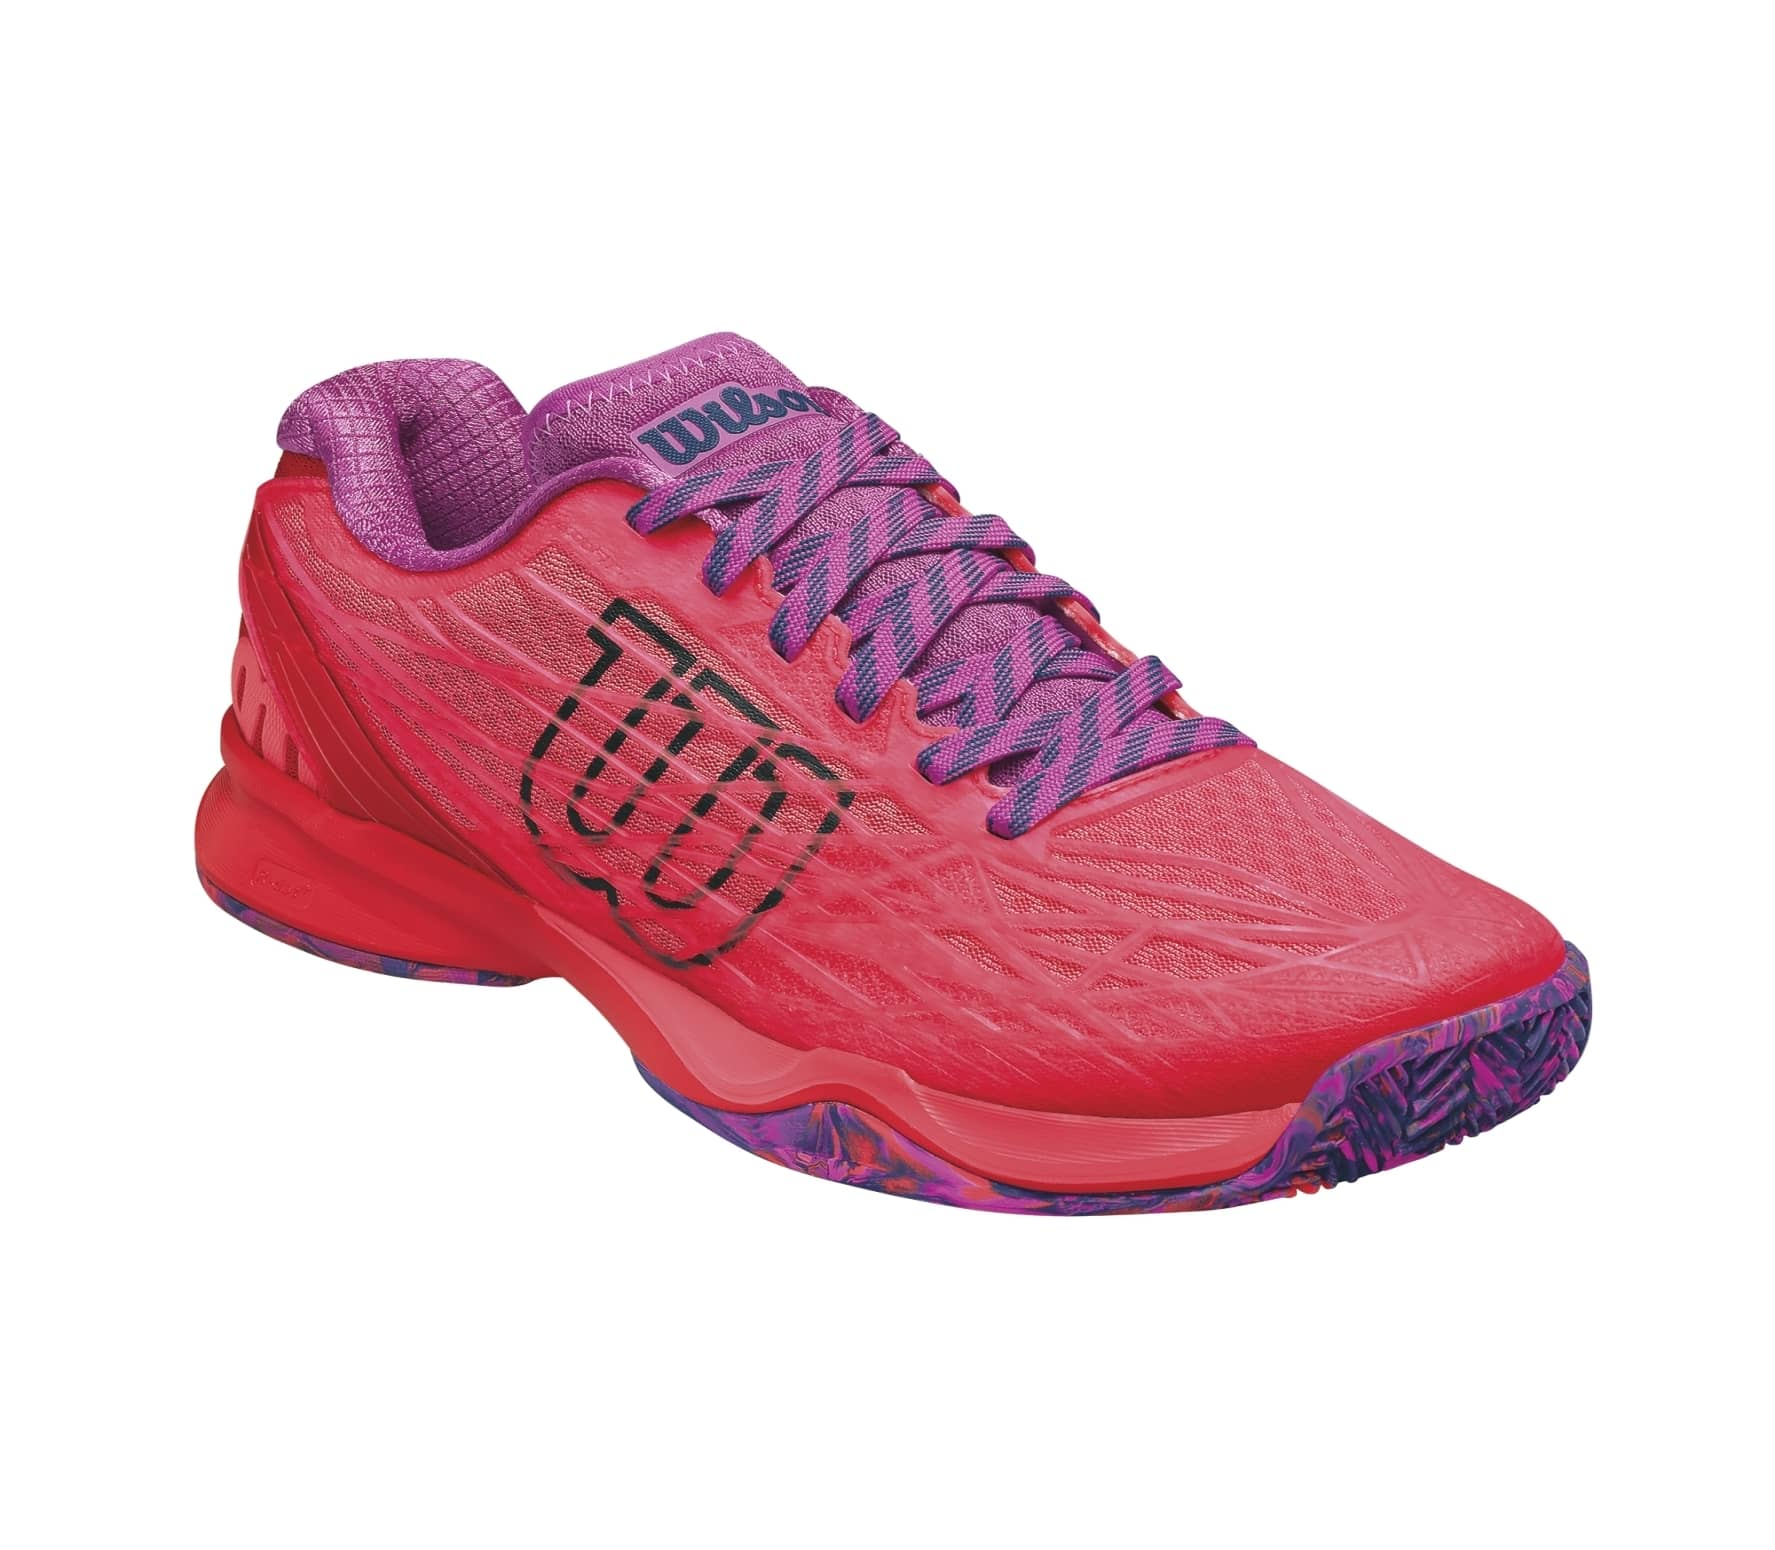 Wilson - Kaos Clay Court women s tennis shoes (red pink) - buy it at ... 85703e9a0209b